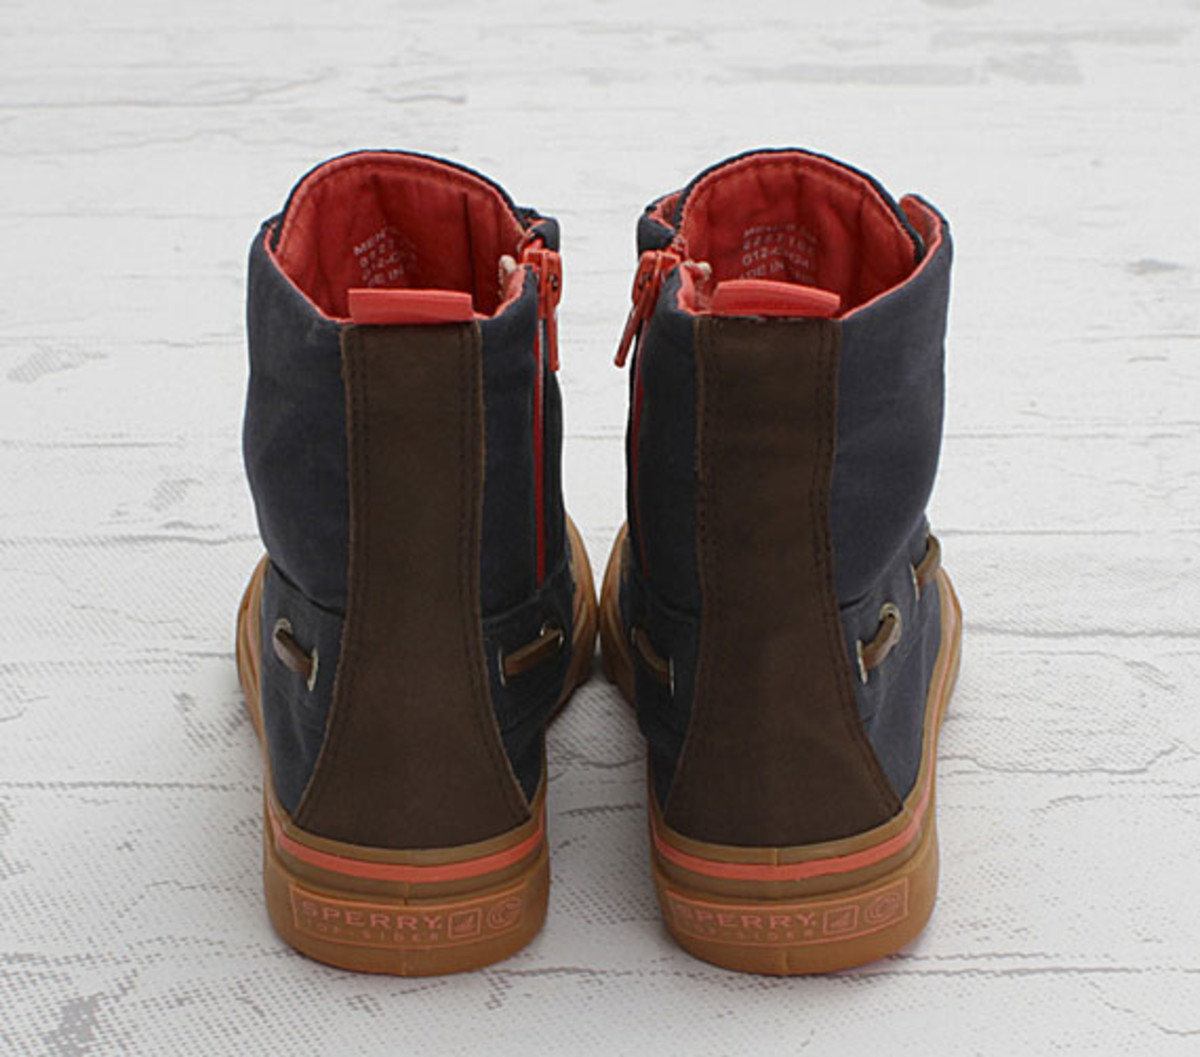 concepts-sperry-top-sider-bahama-boot-fall-2012-14